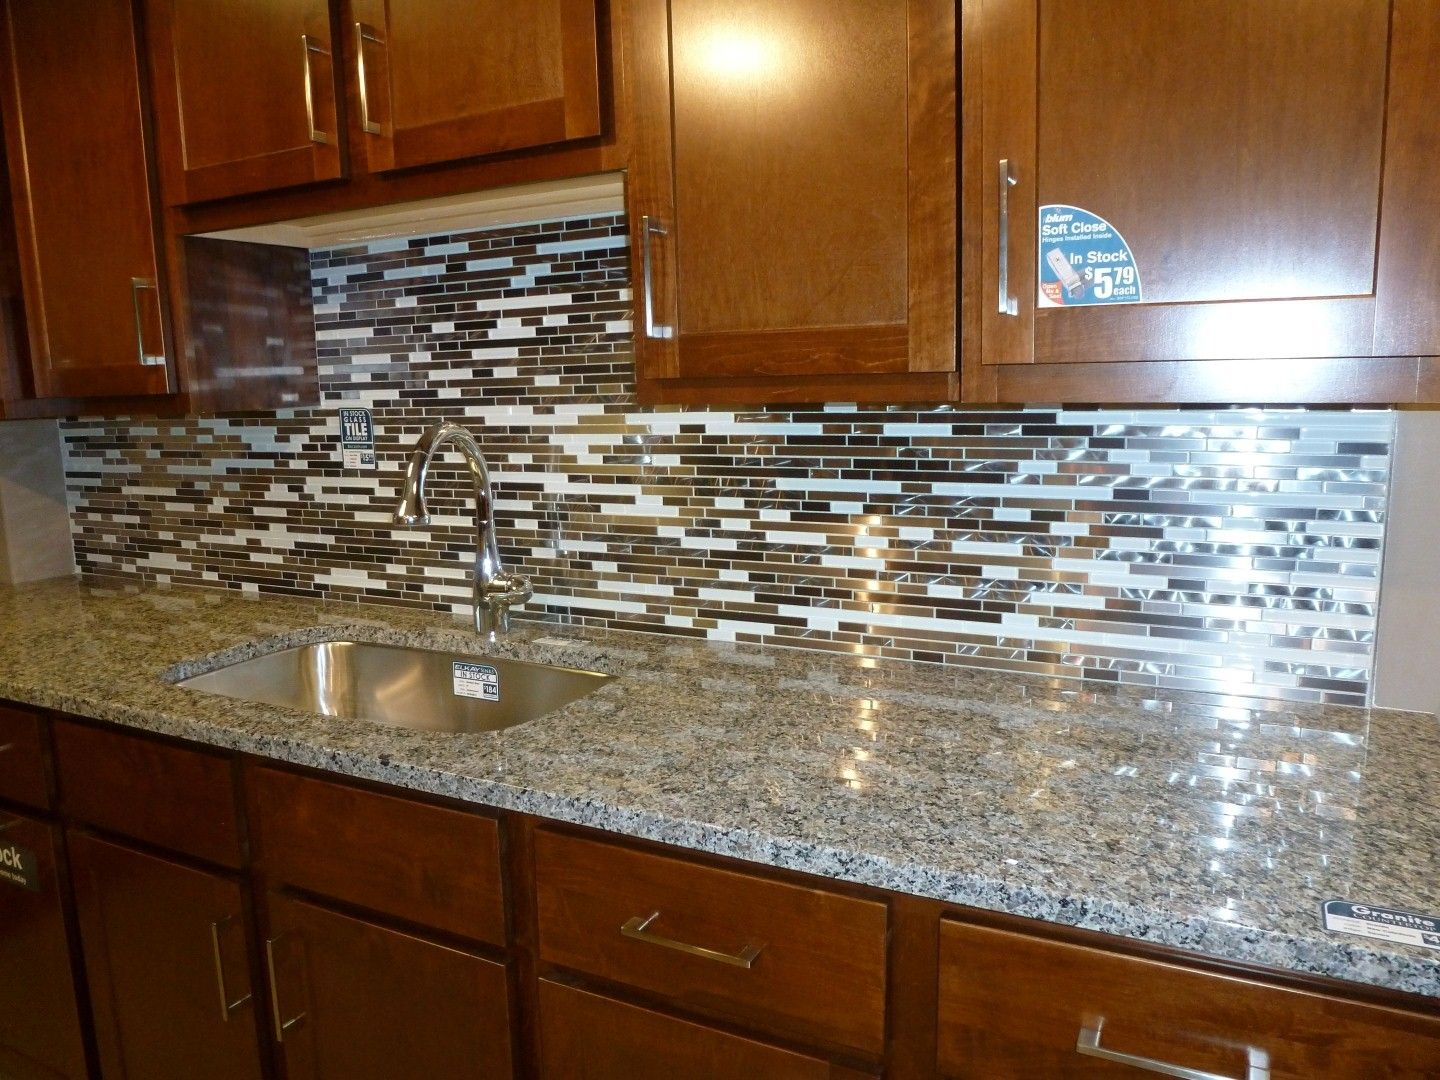 Glass tile kitchen backsplashes pictures metal and white glass random strips backsplash tile - Kitchen backsplash ideas ...